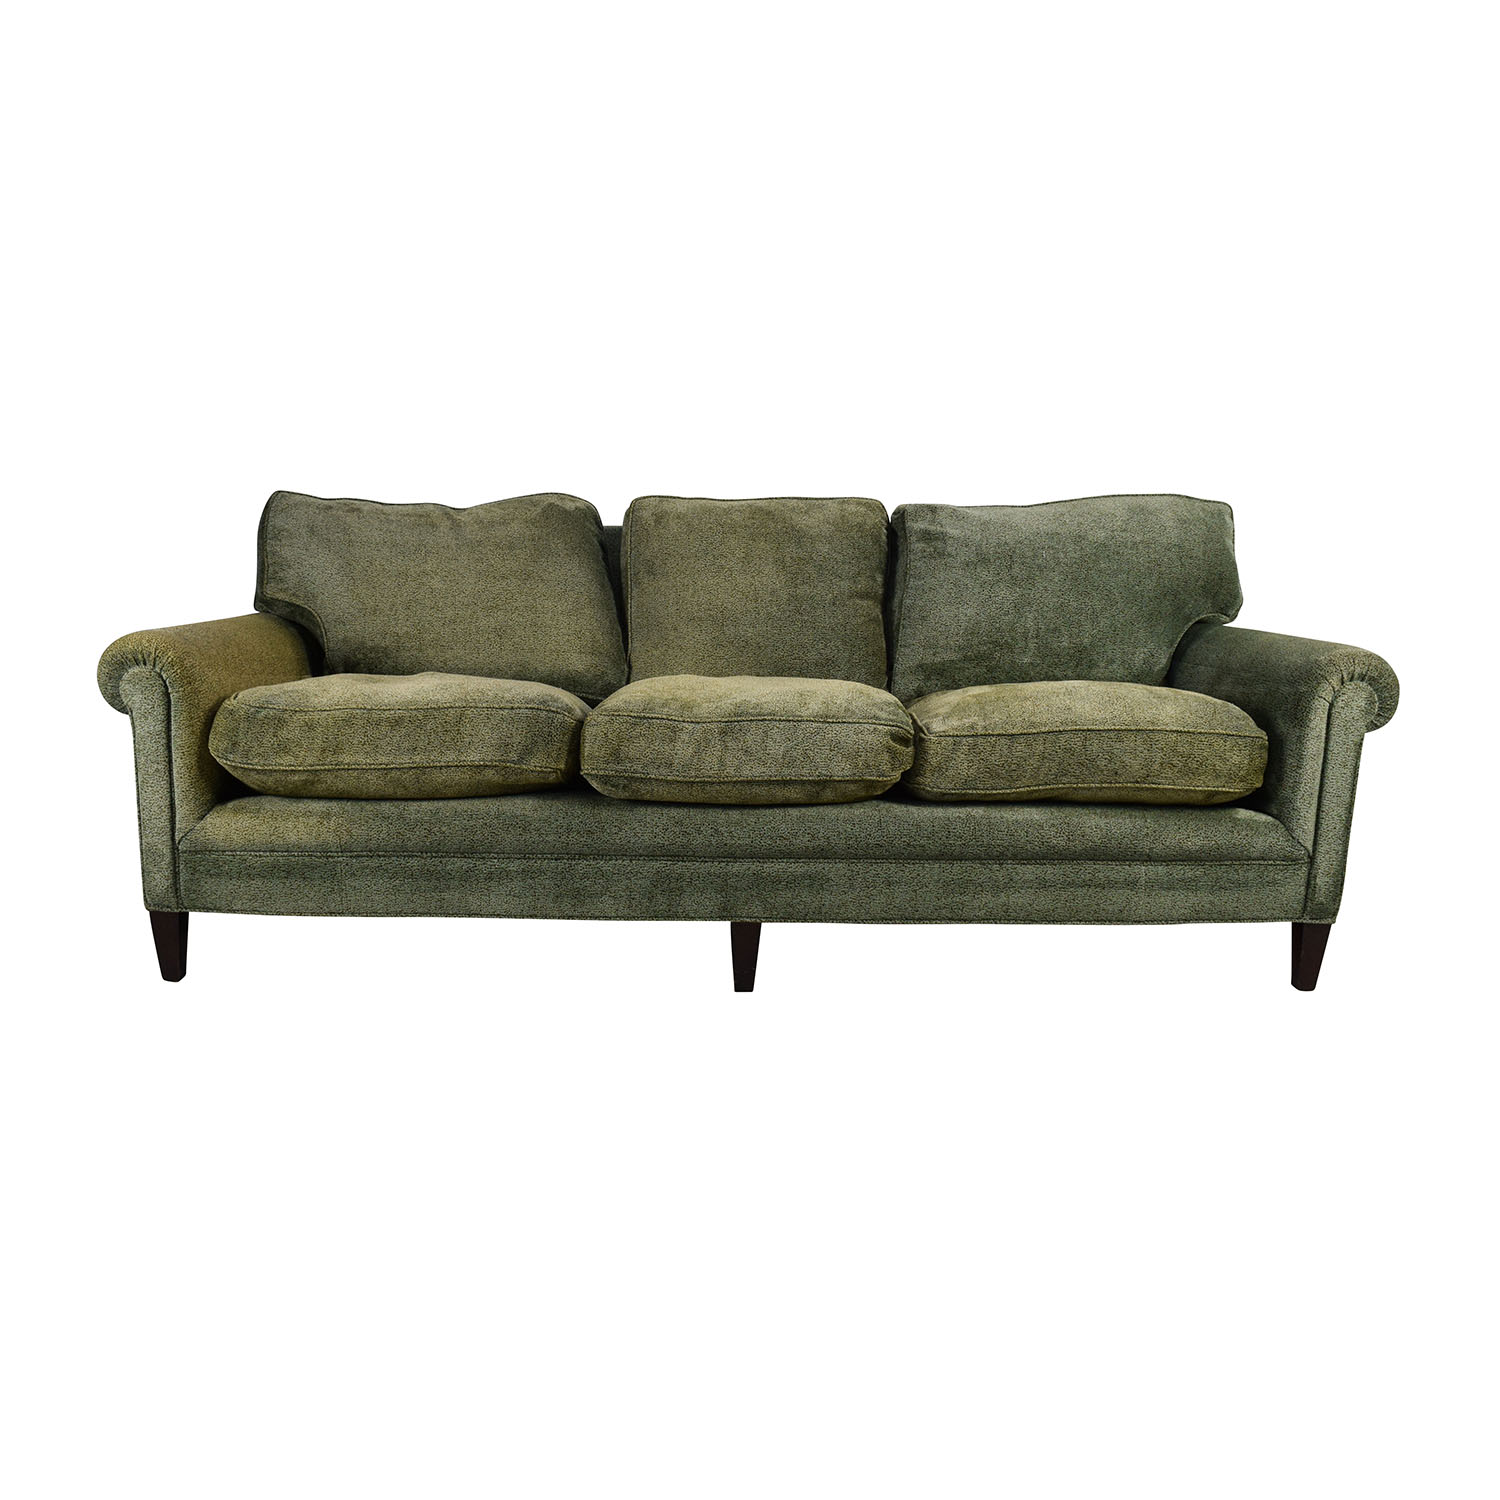 Sofa For Sale Online 89 Off George Smith George Smith Classic English Style Sofa Sofas